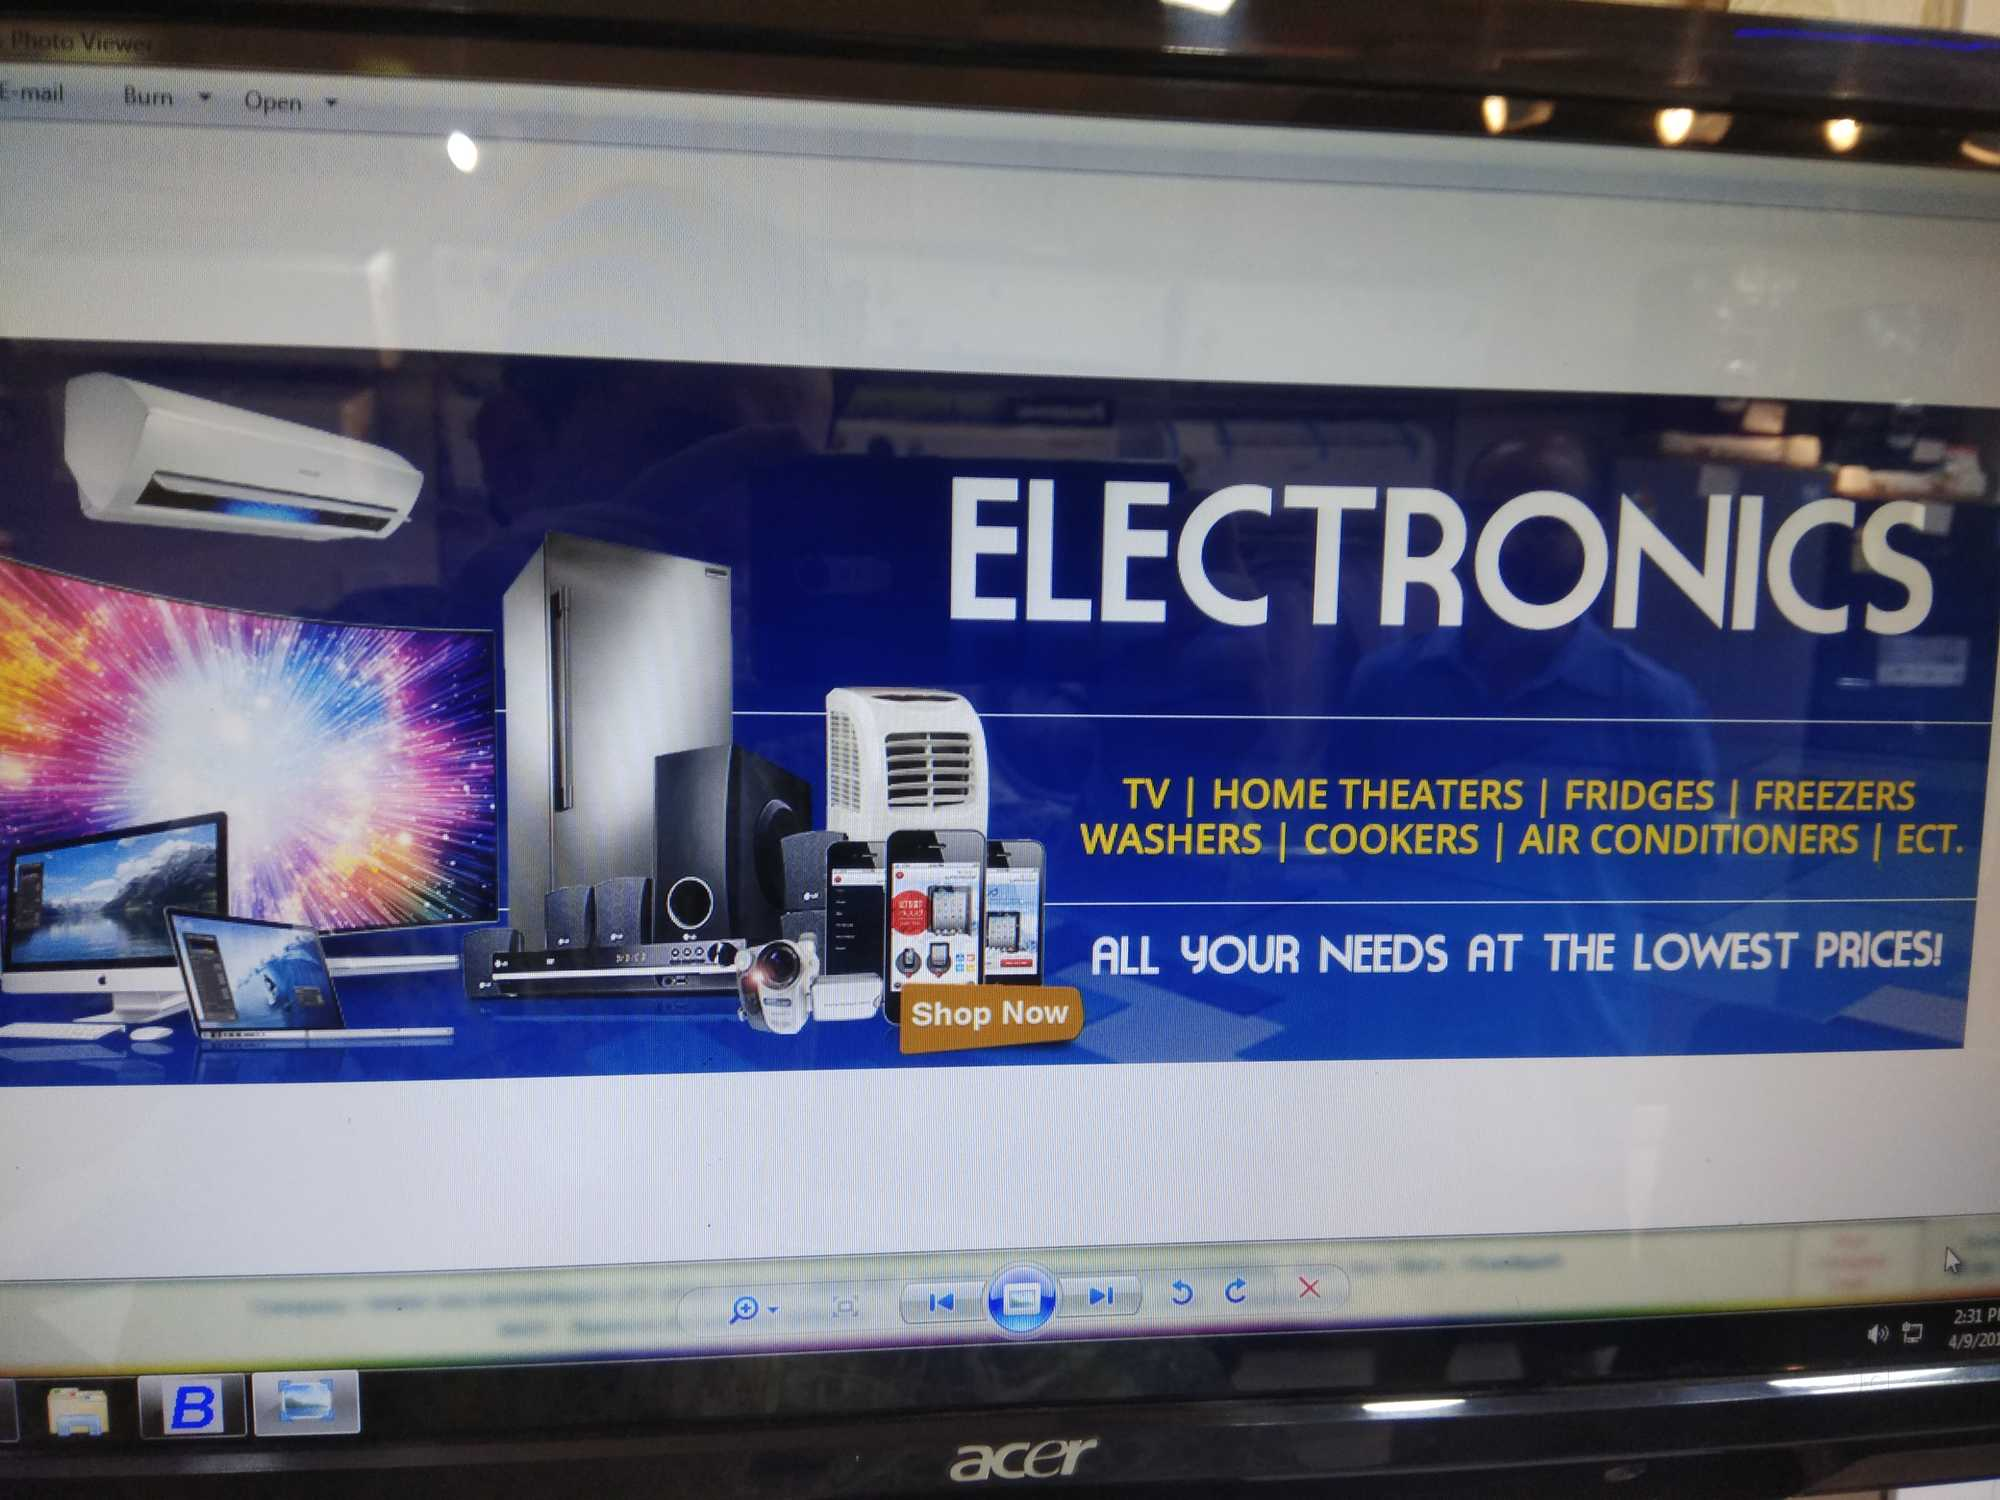 Top 9 Electronic Goods Showrooms in Panchkula Sector 11 - Best